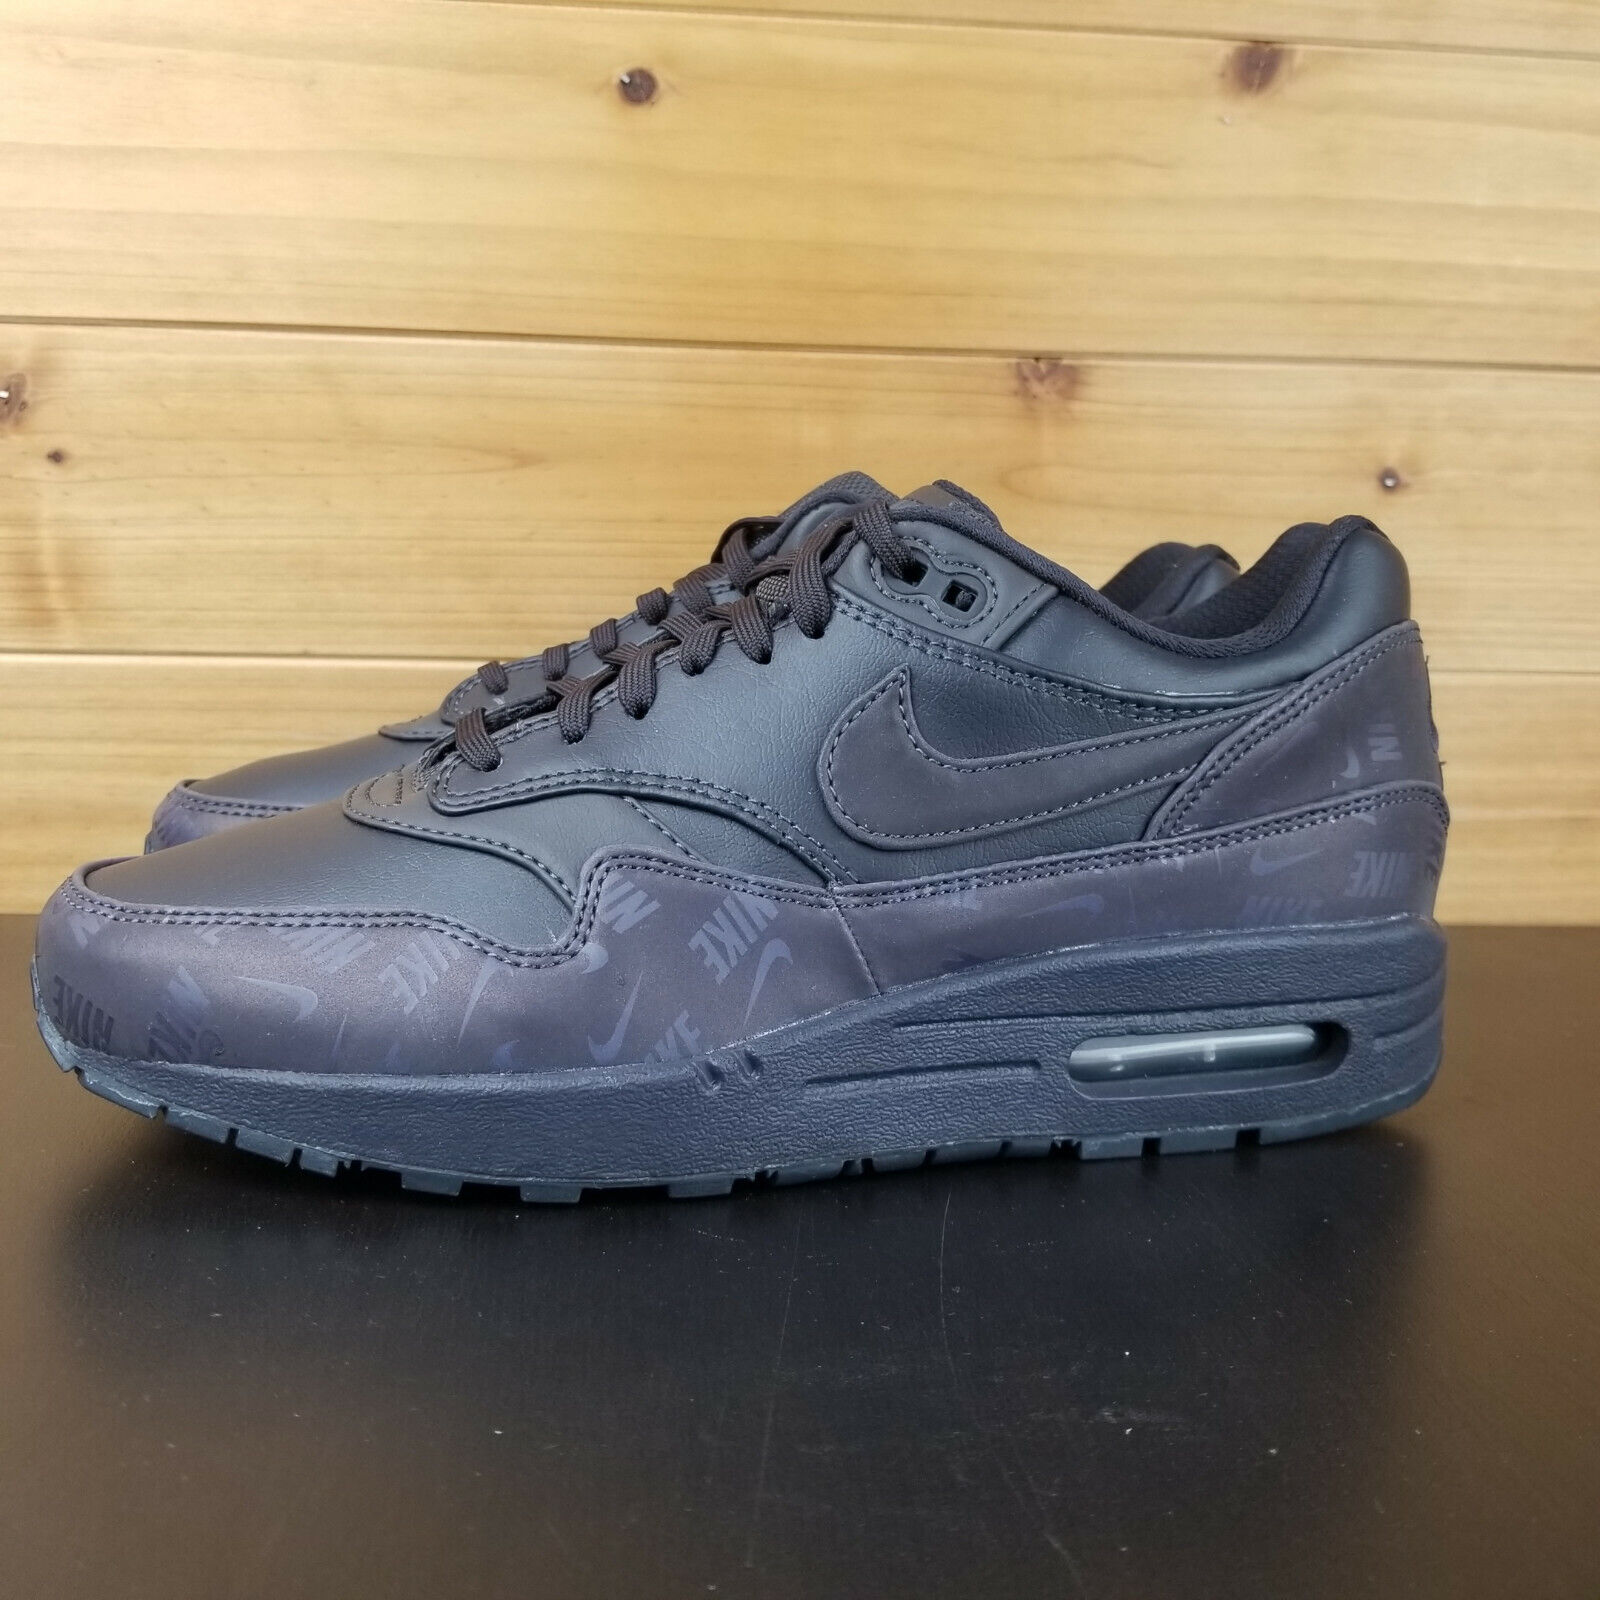 Nike Air Max 1 LX LUX Logo Print Women's shoes shoes shoes Oil Grey 917691-001 AM87 AM1 2ab517